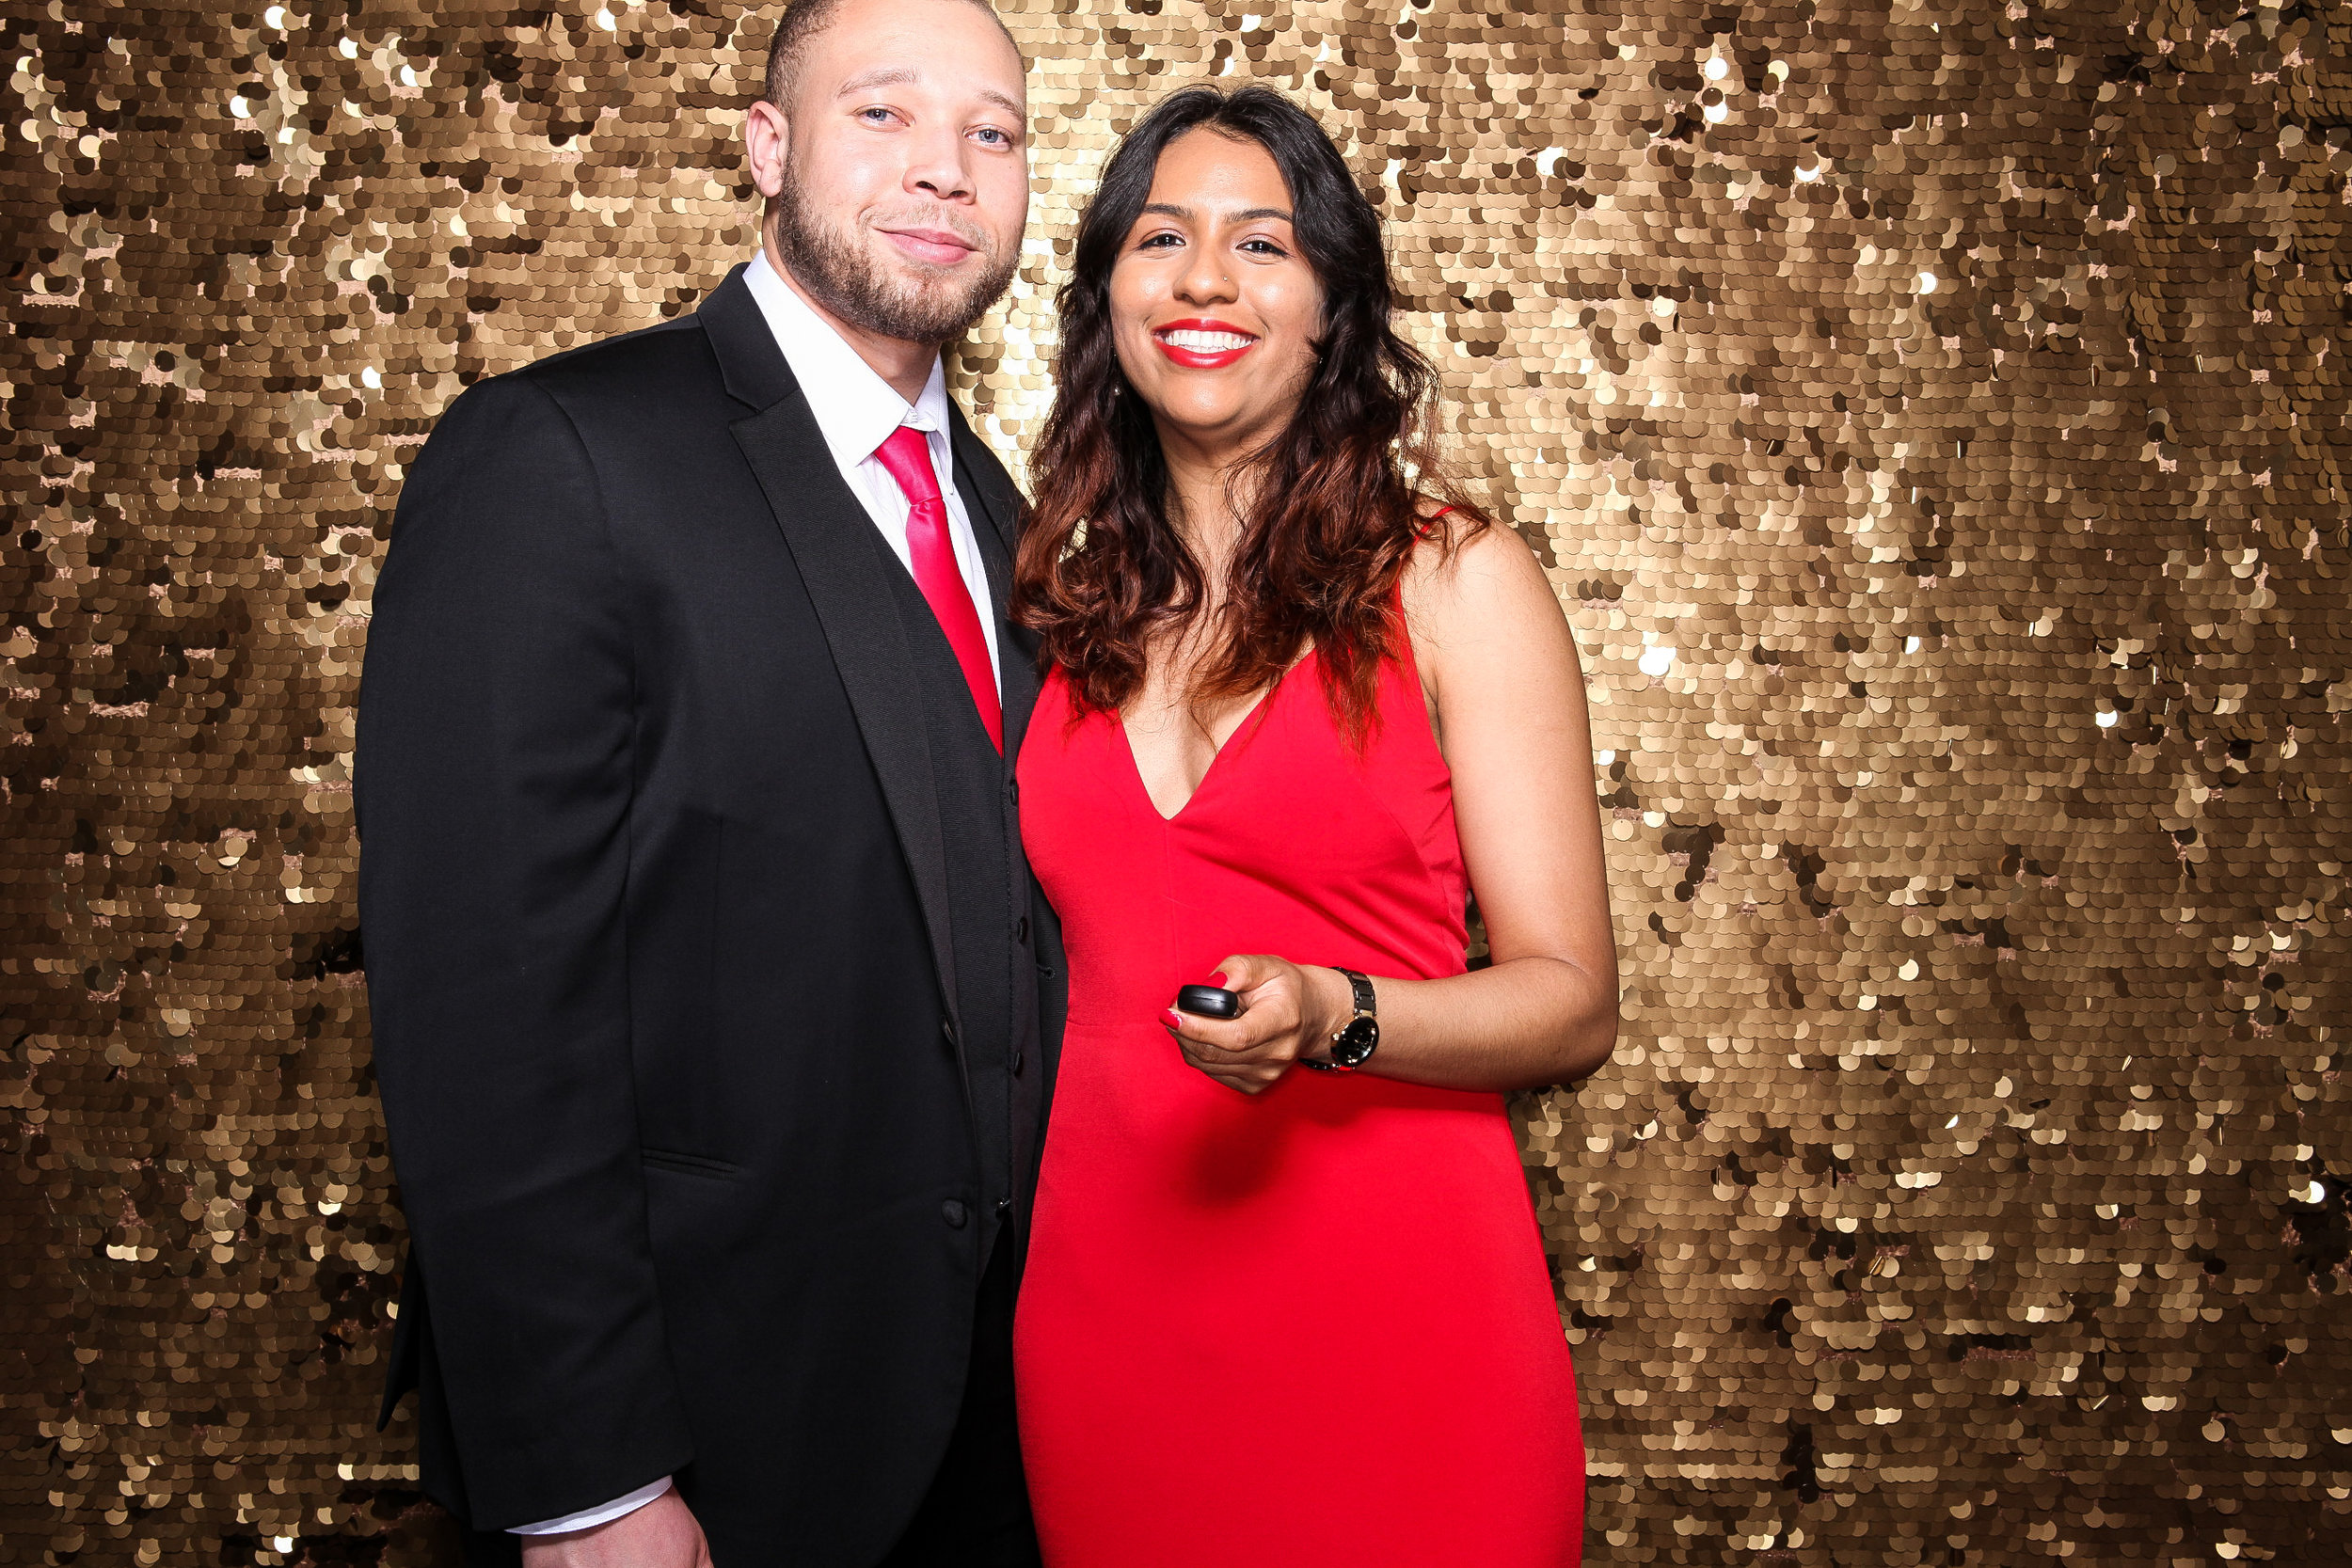 20190503_Adelphi_Senior_Formal-051.jpg